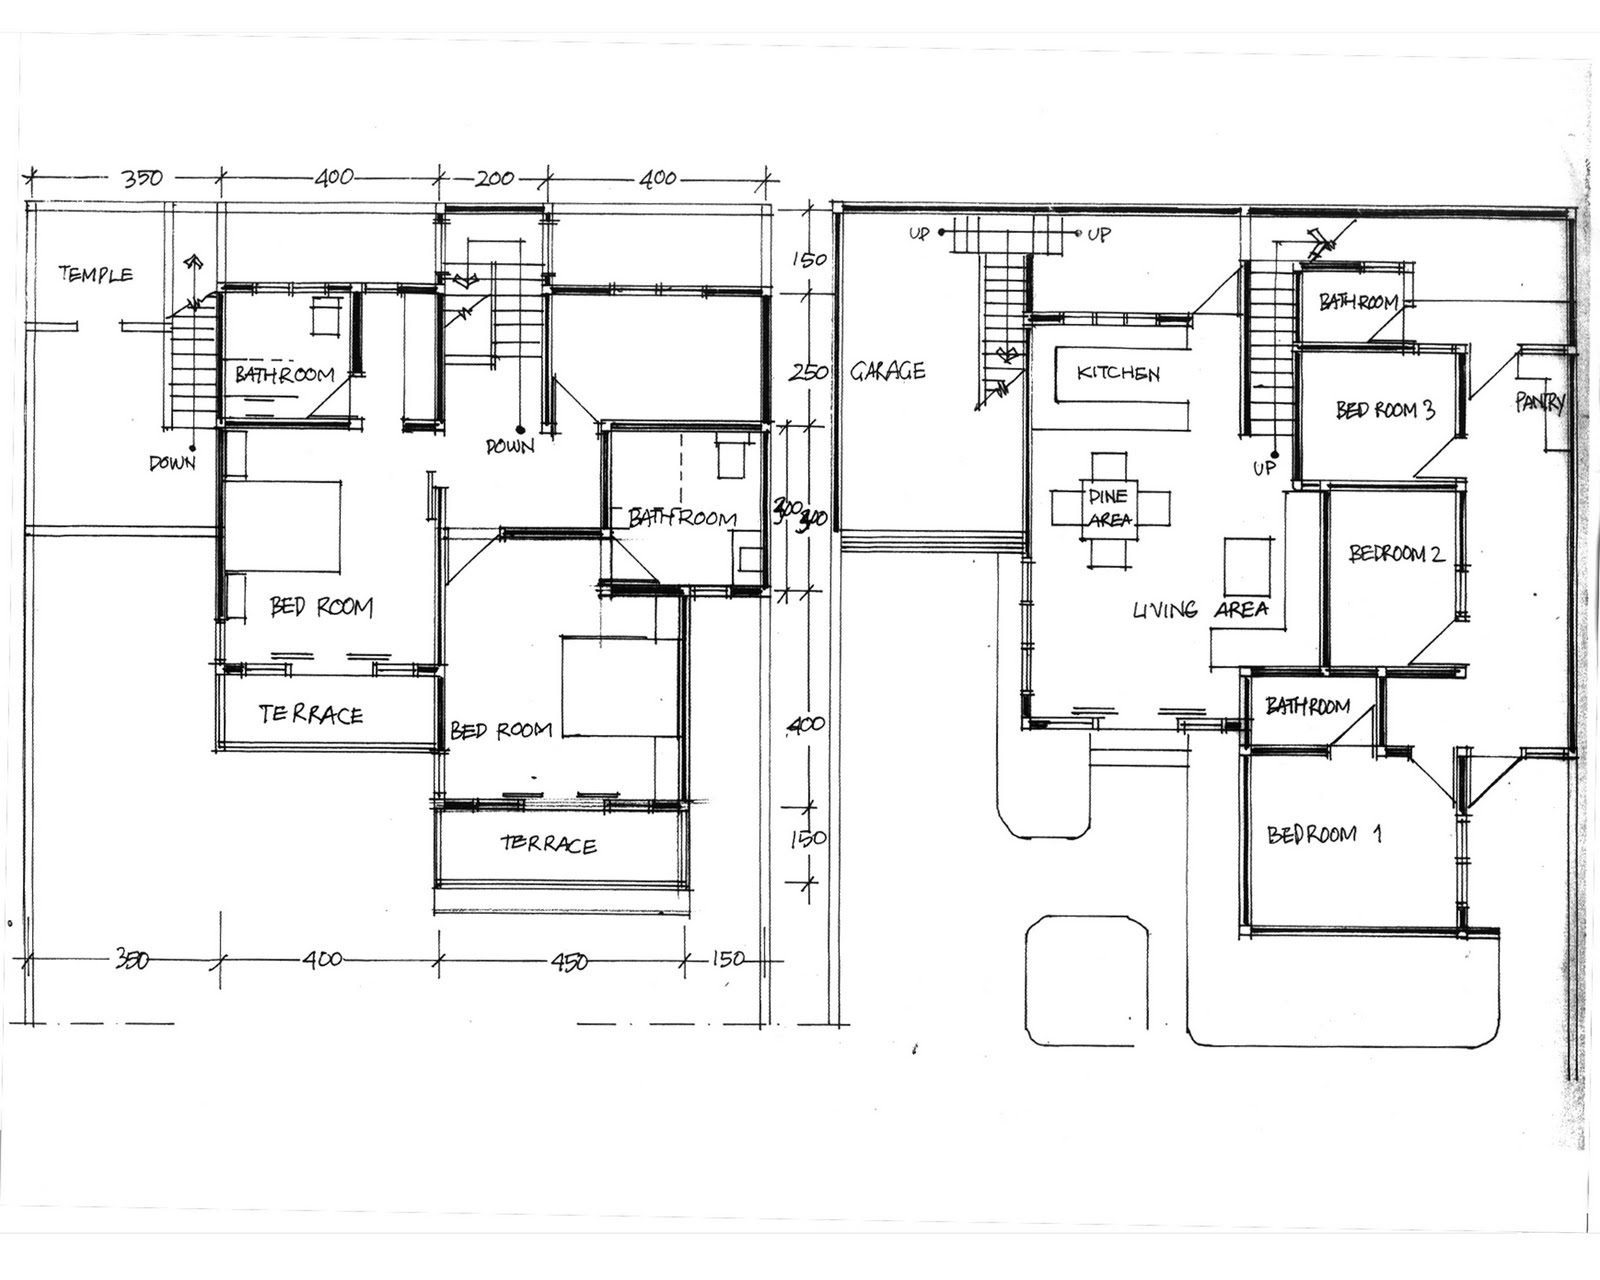 Unique Leed House Plans House Floor Ideas